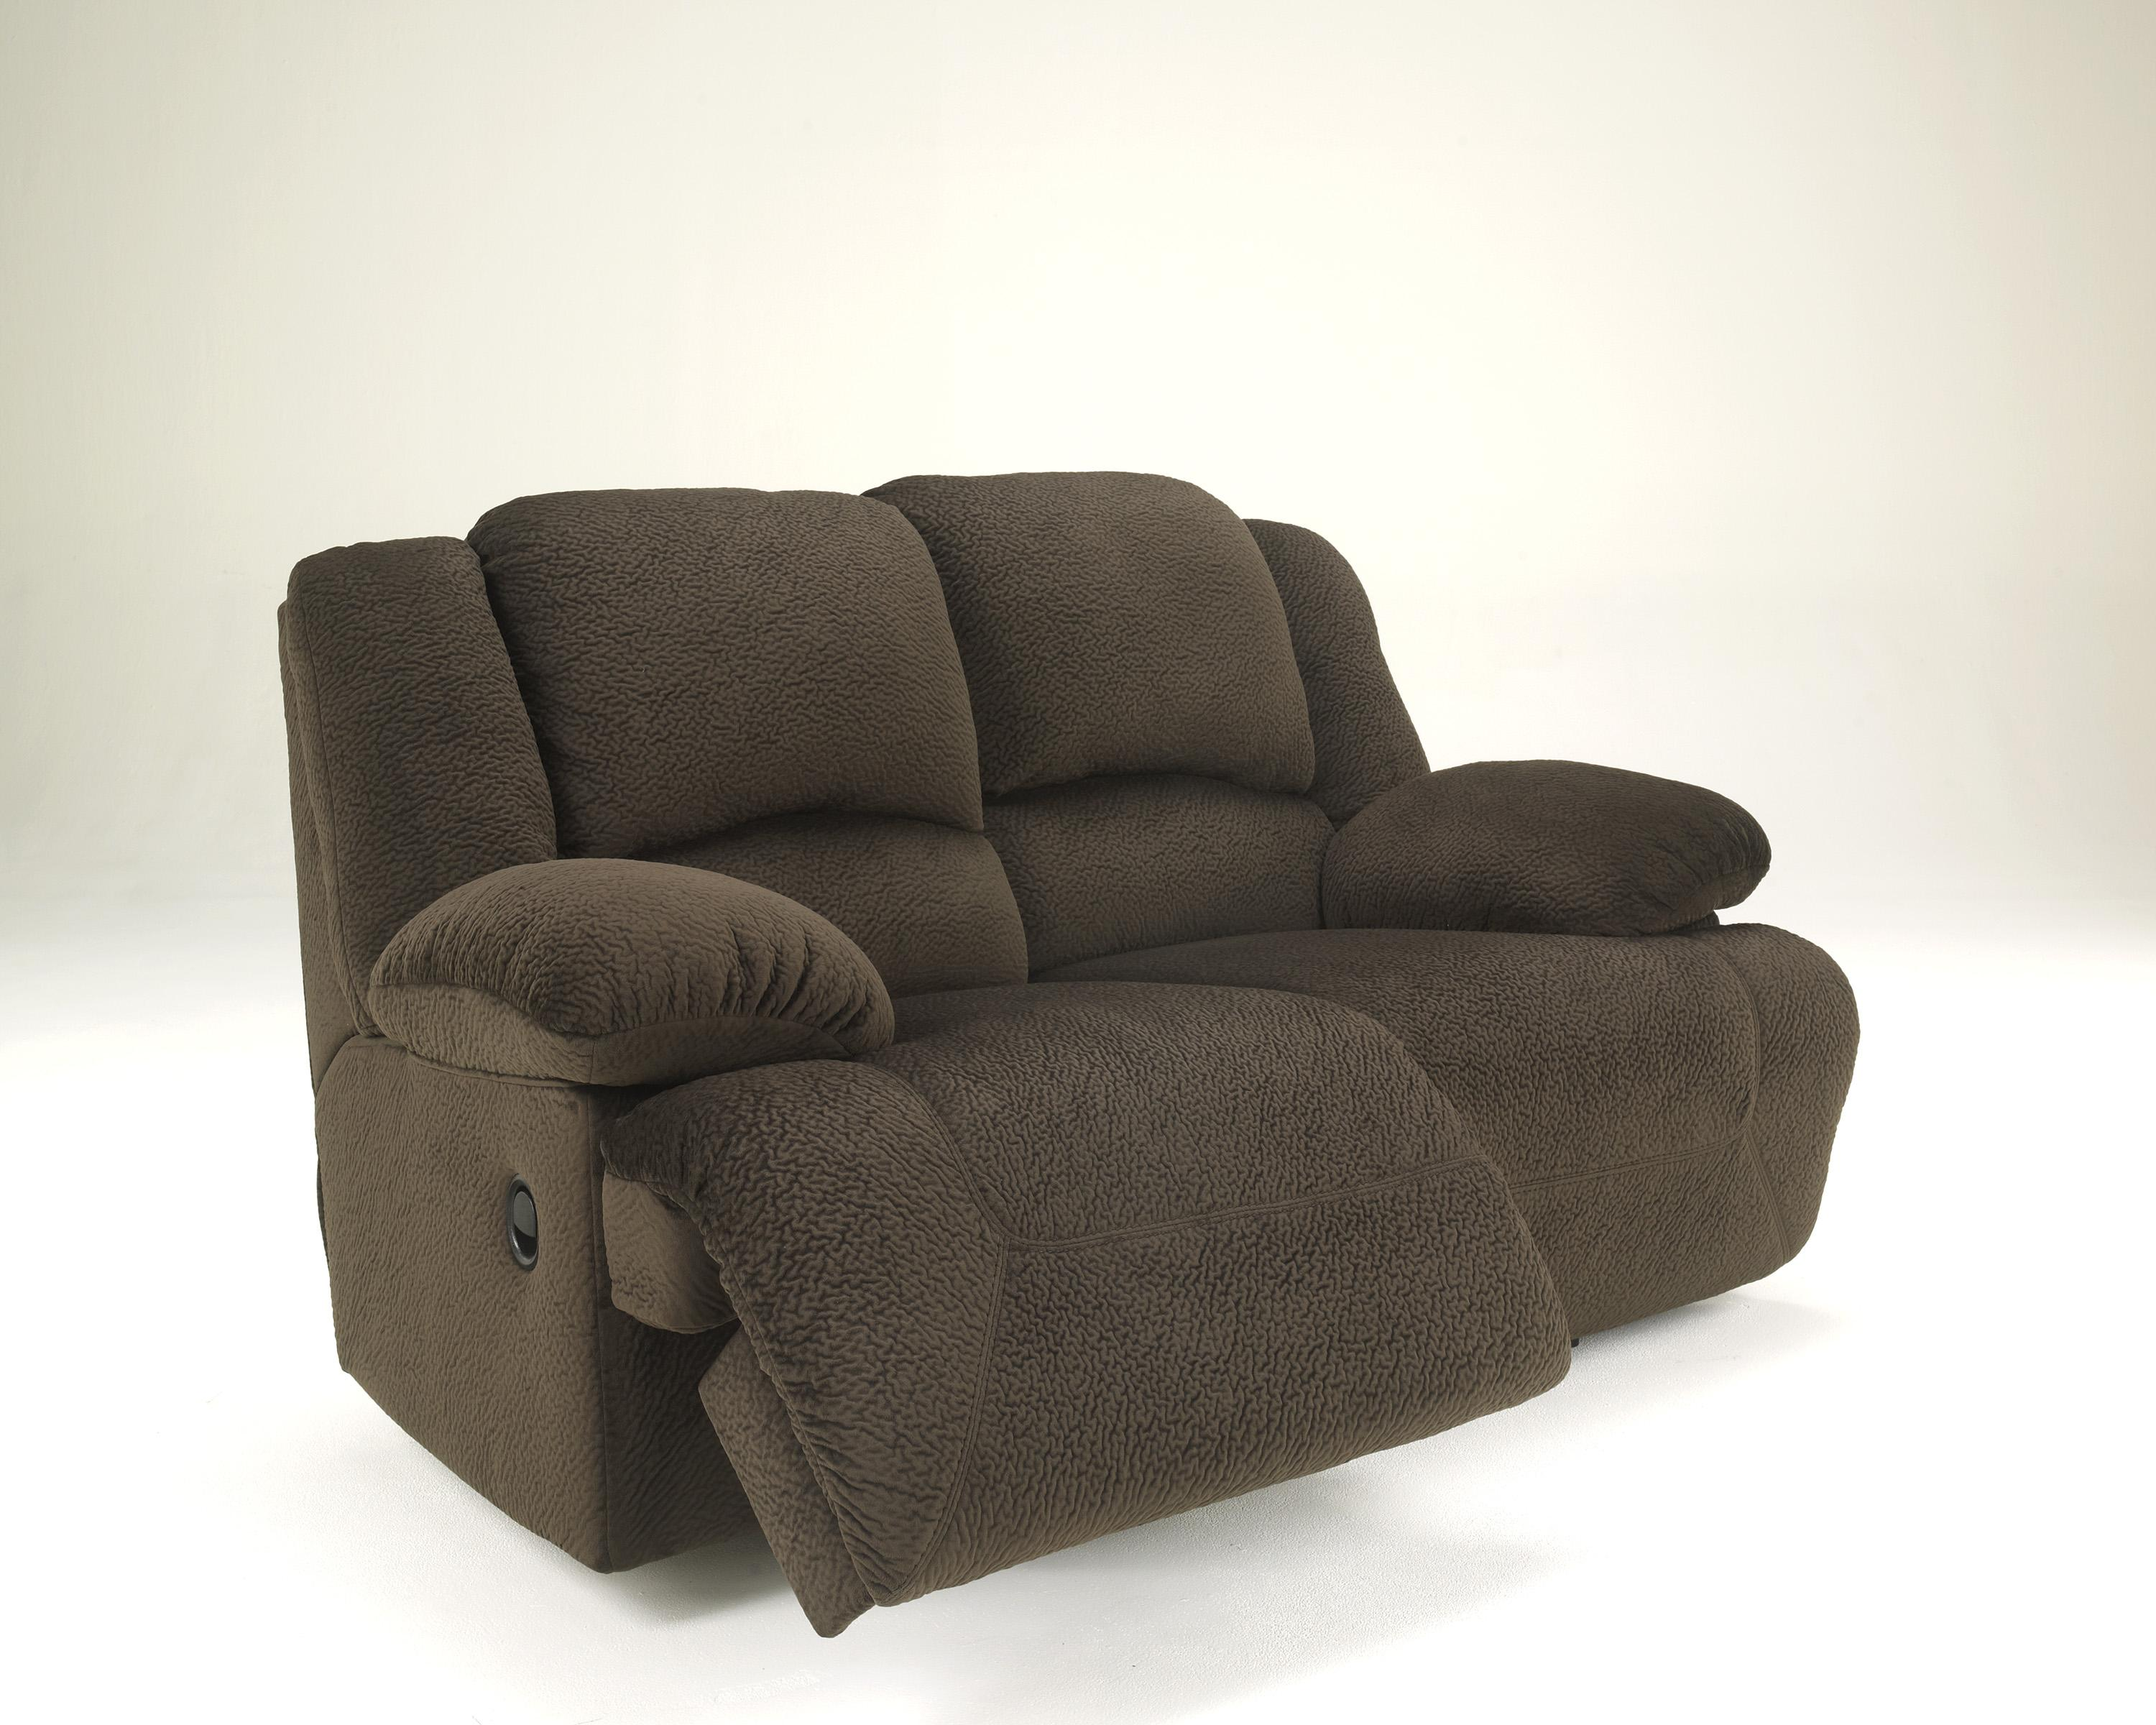 Casual Contemporary Reclining Loveseat By Signature Design By Ashley Wolf And Gardiner Wolf